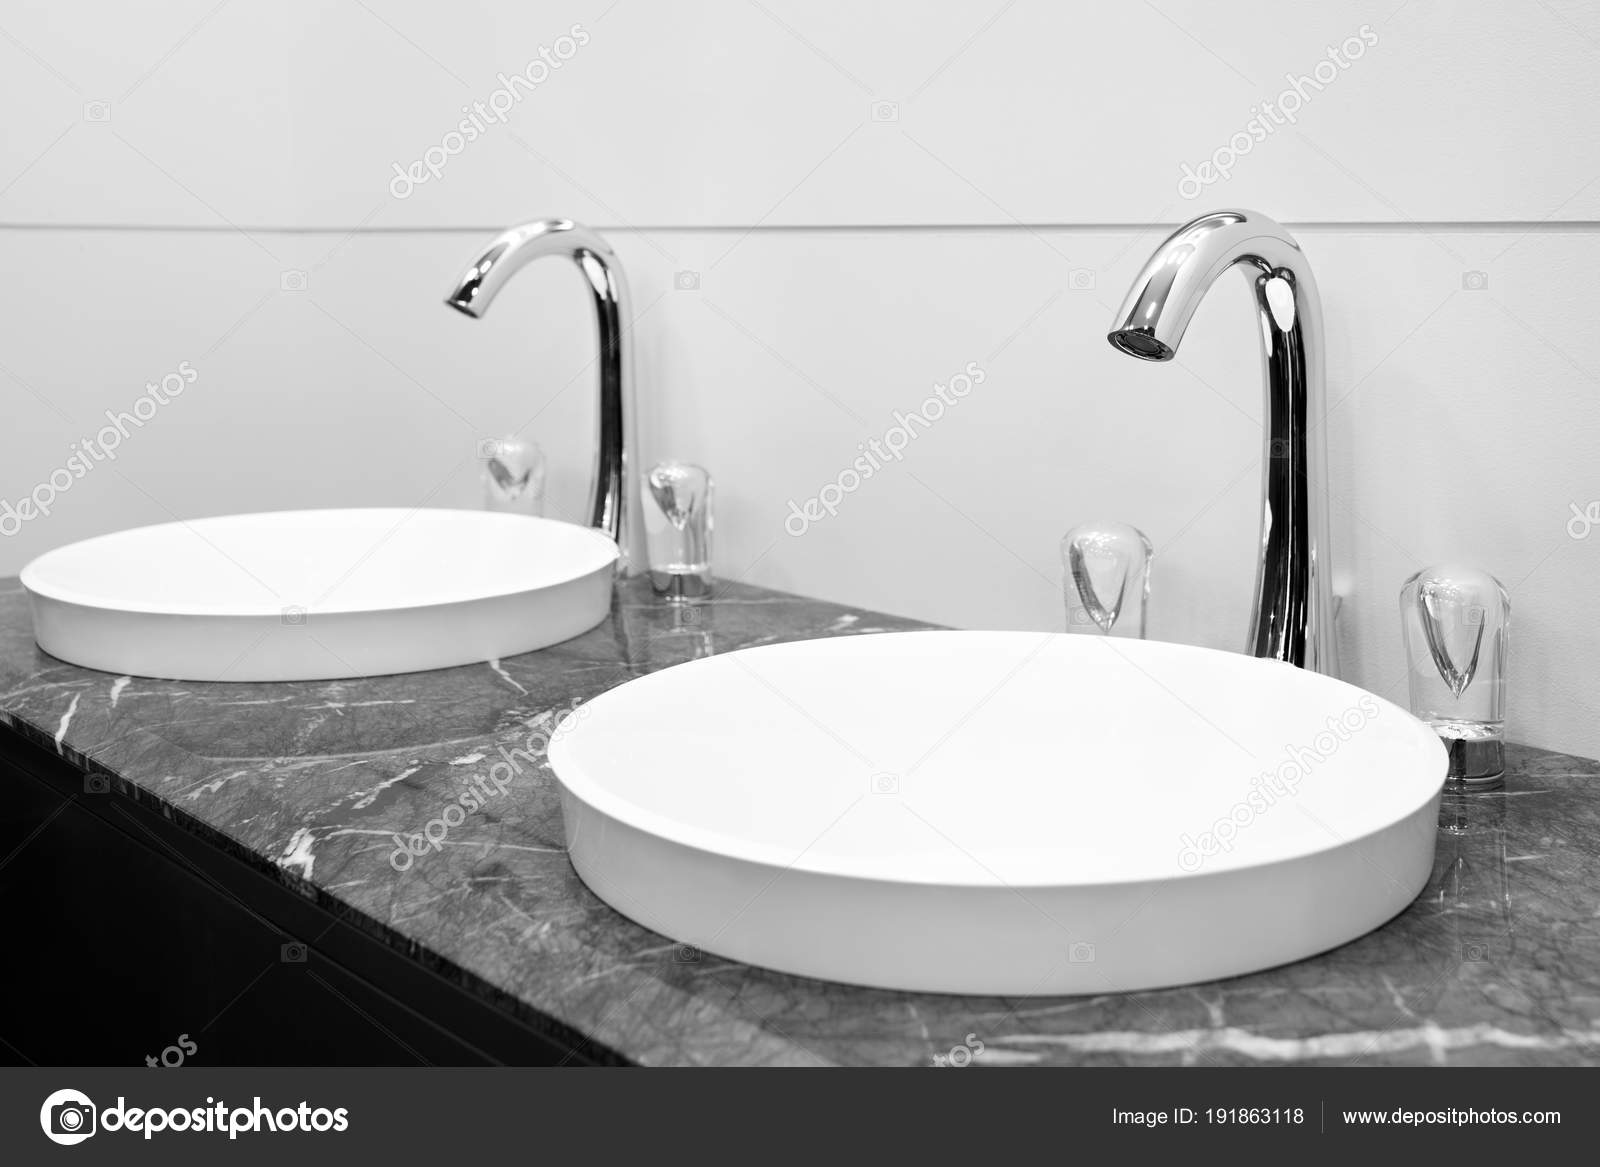 int rieur salle bain noir blanc avec deux lavabo robinet photographie czdistagon 191863118. Black Bedroom Furniture Sets. Home Design Ideas